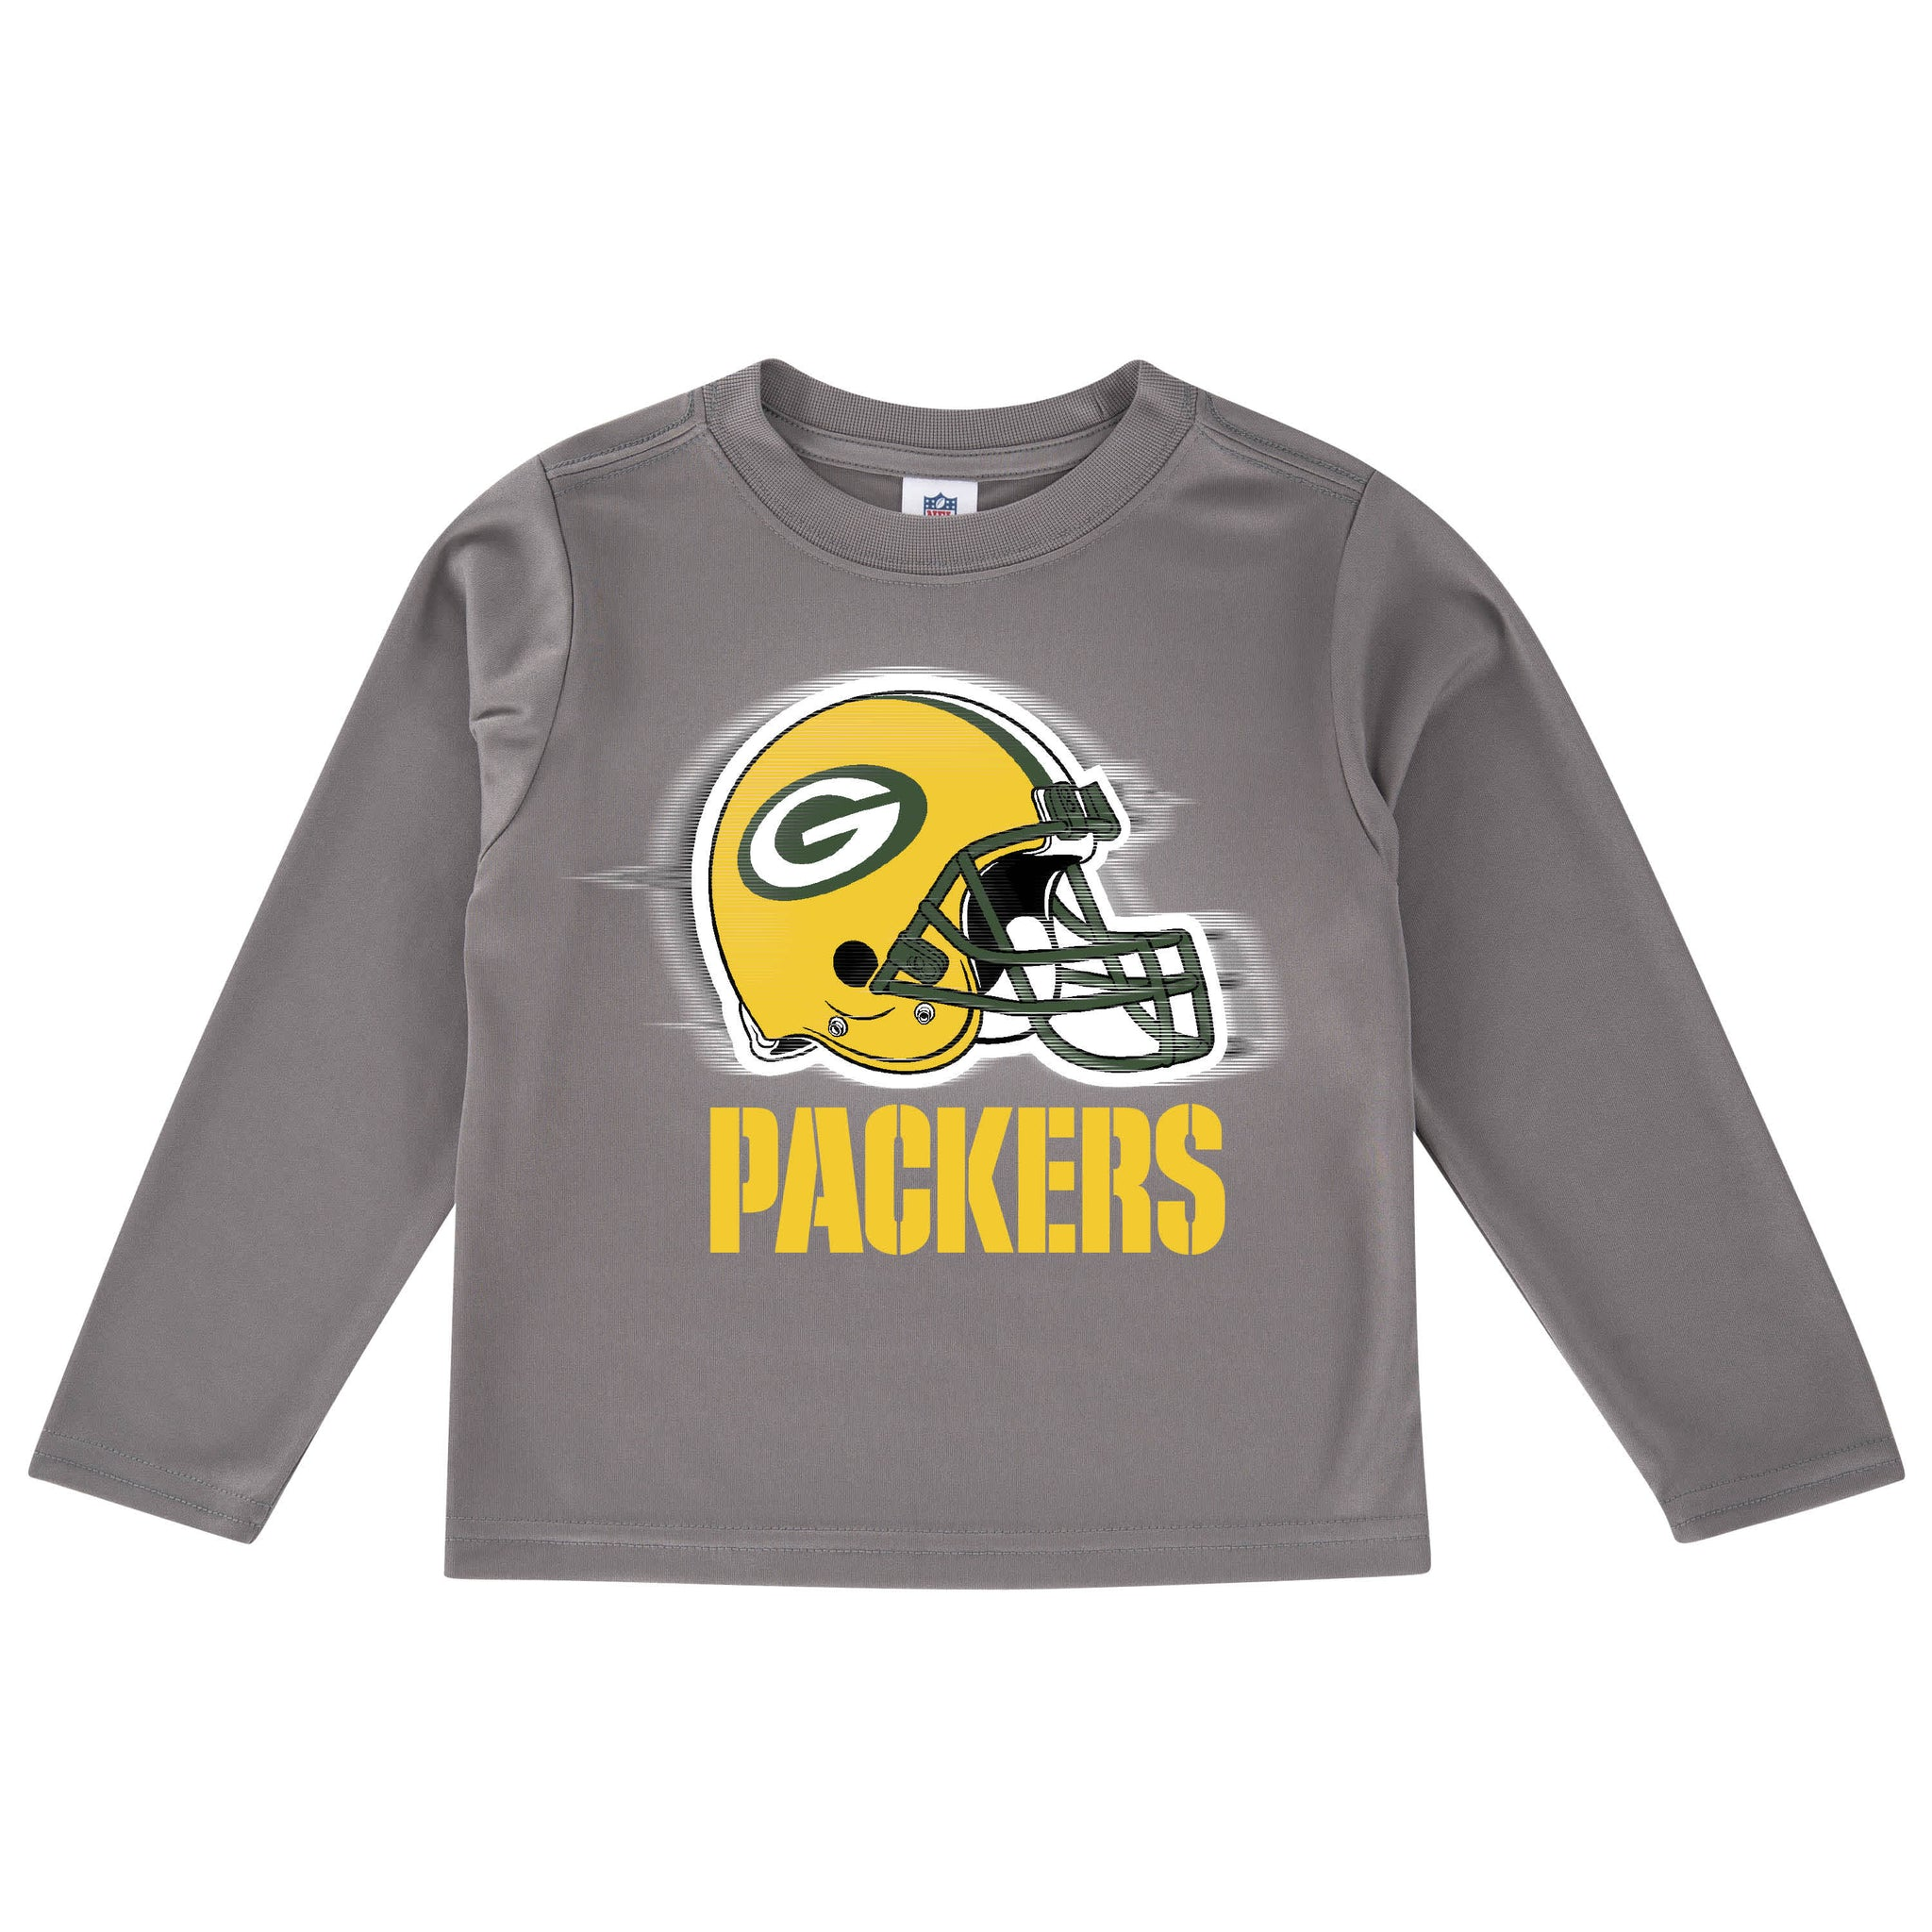 Green Bay Packers Long Sleeve Logo Tee Shirt